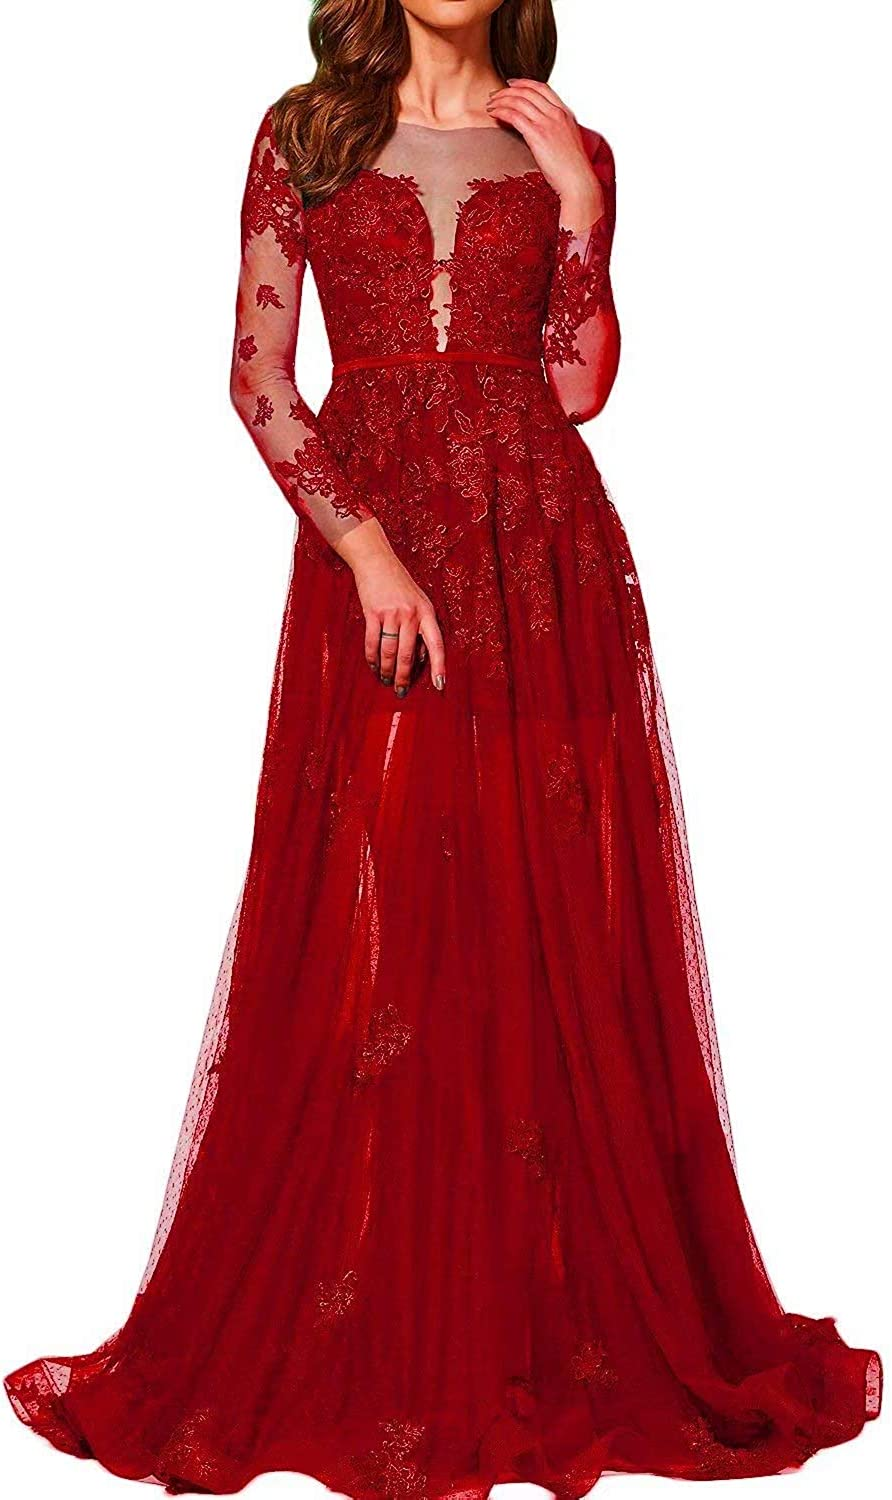 UZN Women's Long Sleeves Lace Appliqued Pron Dress V Neck Empire Waist Party Gown Tulle